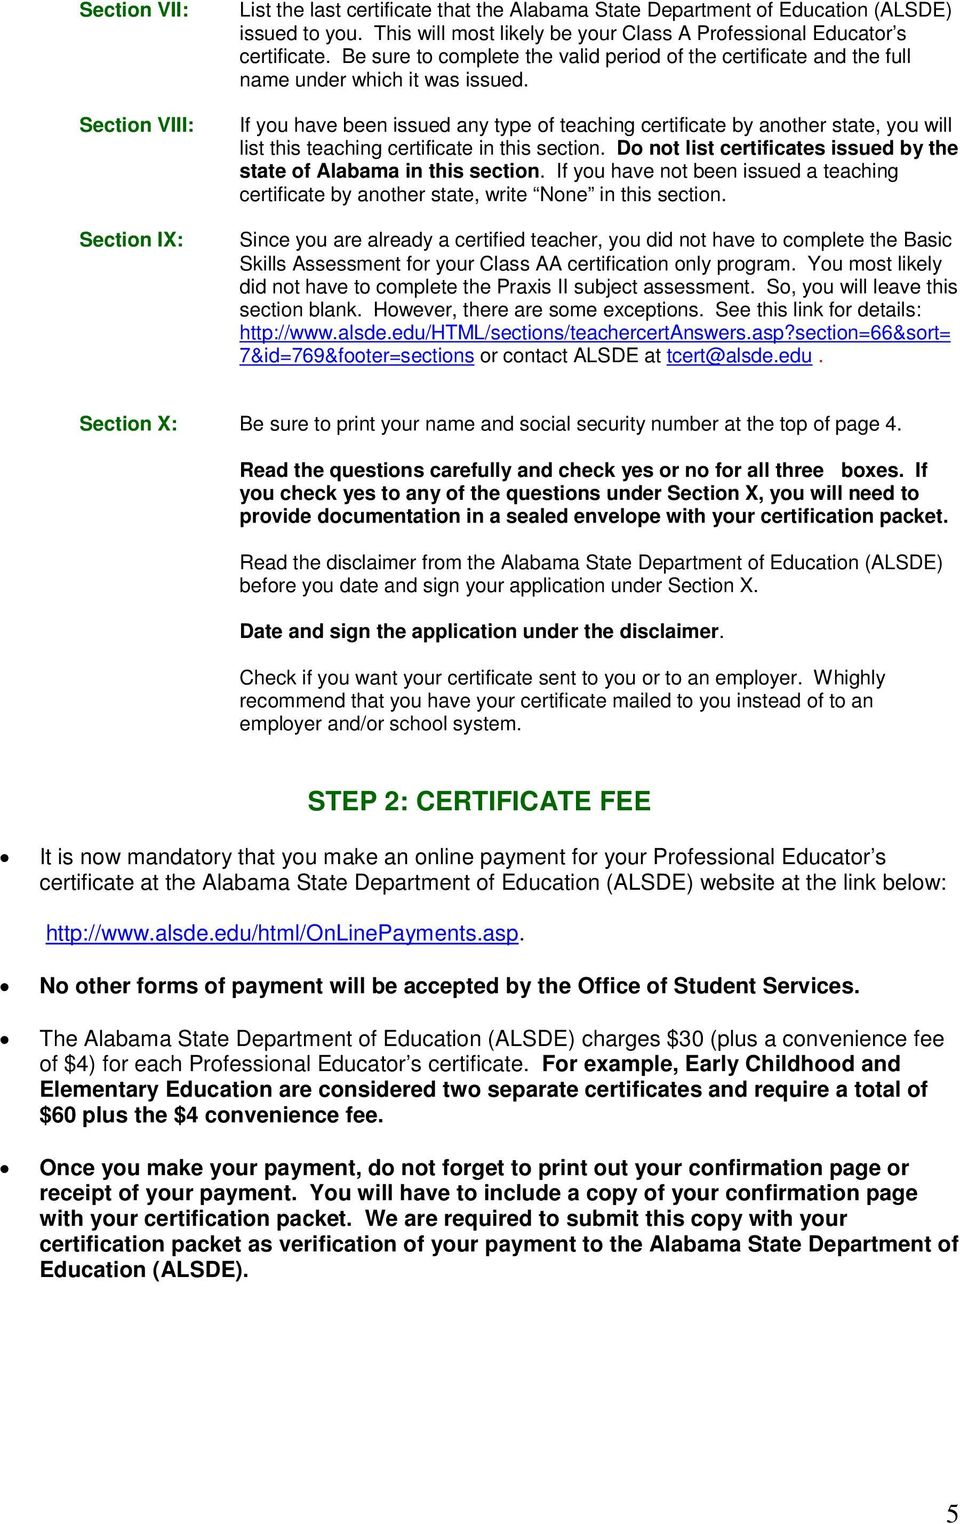 Uab Certification Handbook For Class Aa Certification Only Students